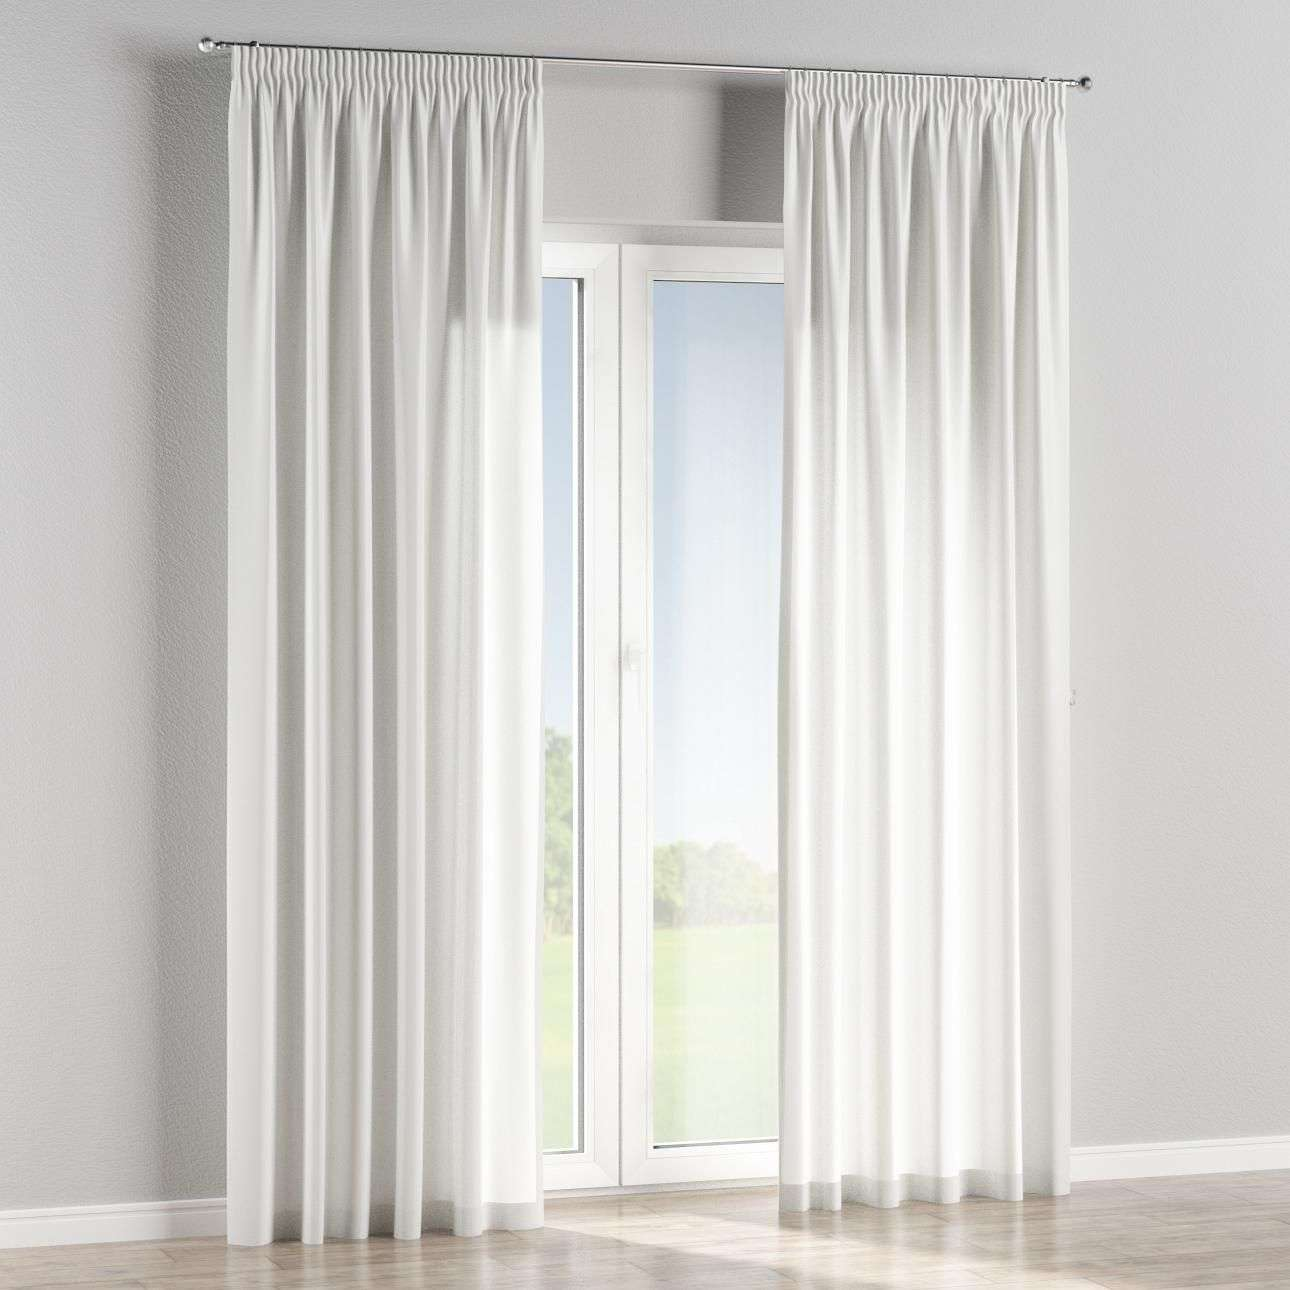 Pencil pleat lined curtains in collection Jupiter, fabric: 127-04